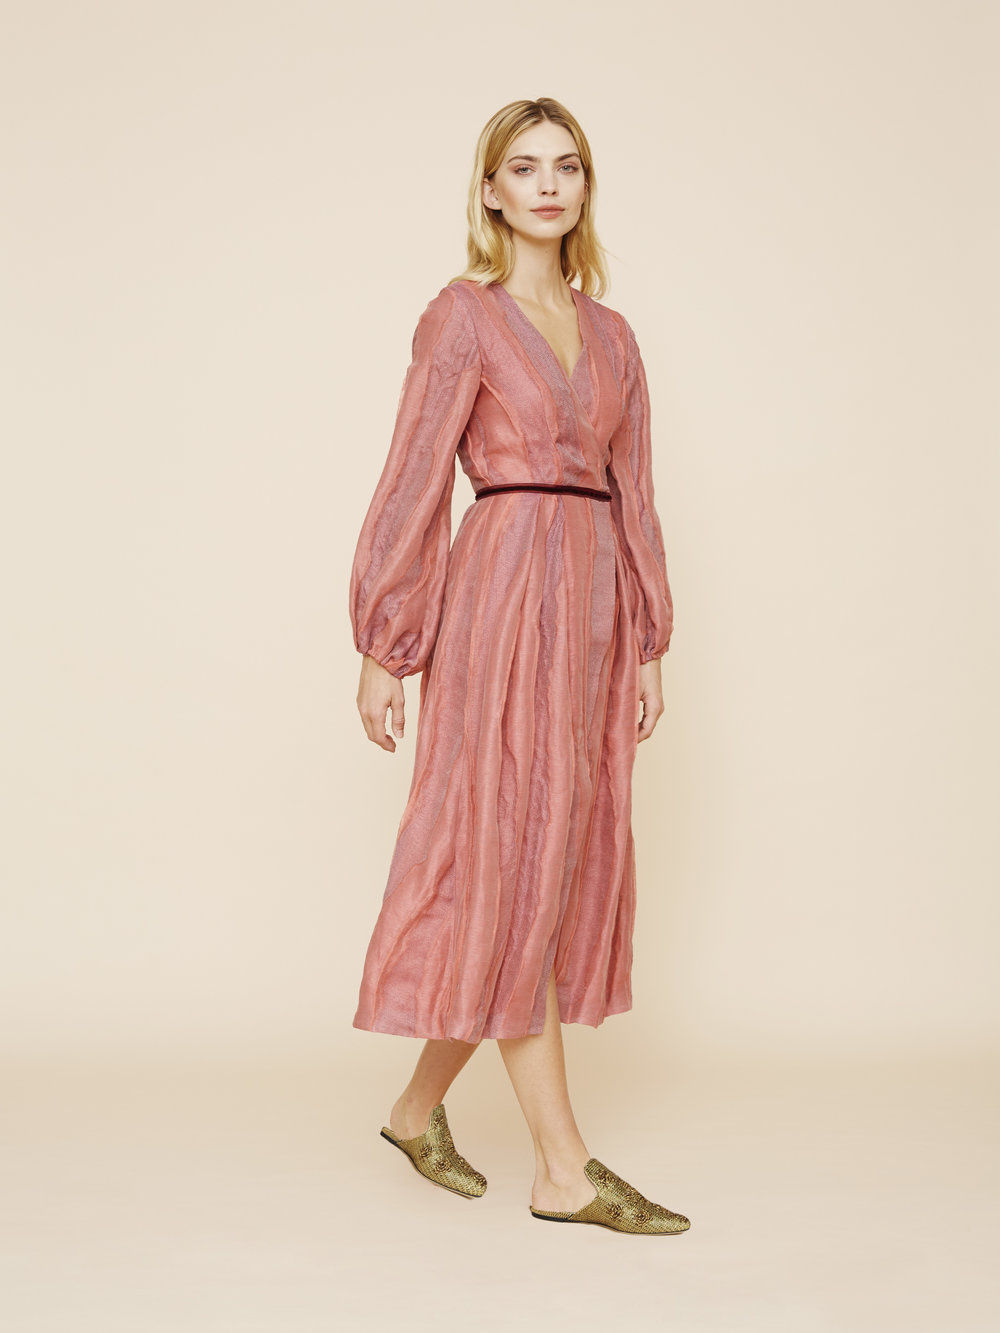 17a17 amelie wrap dress lima pink.jpg